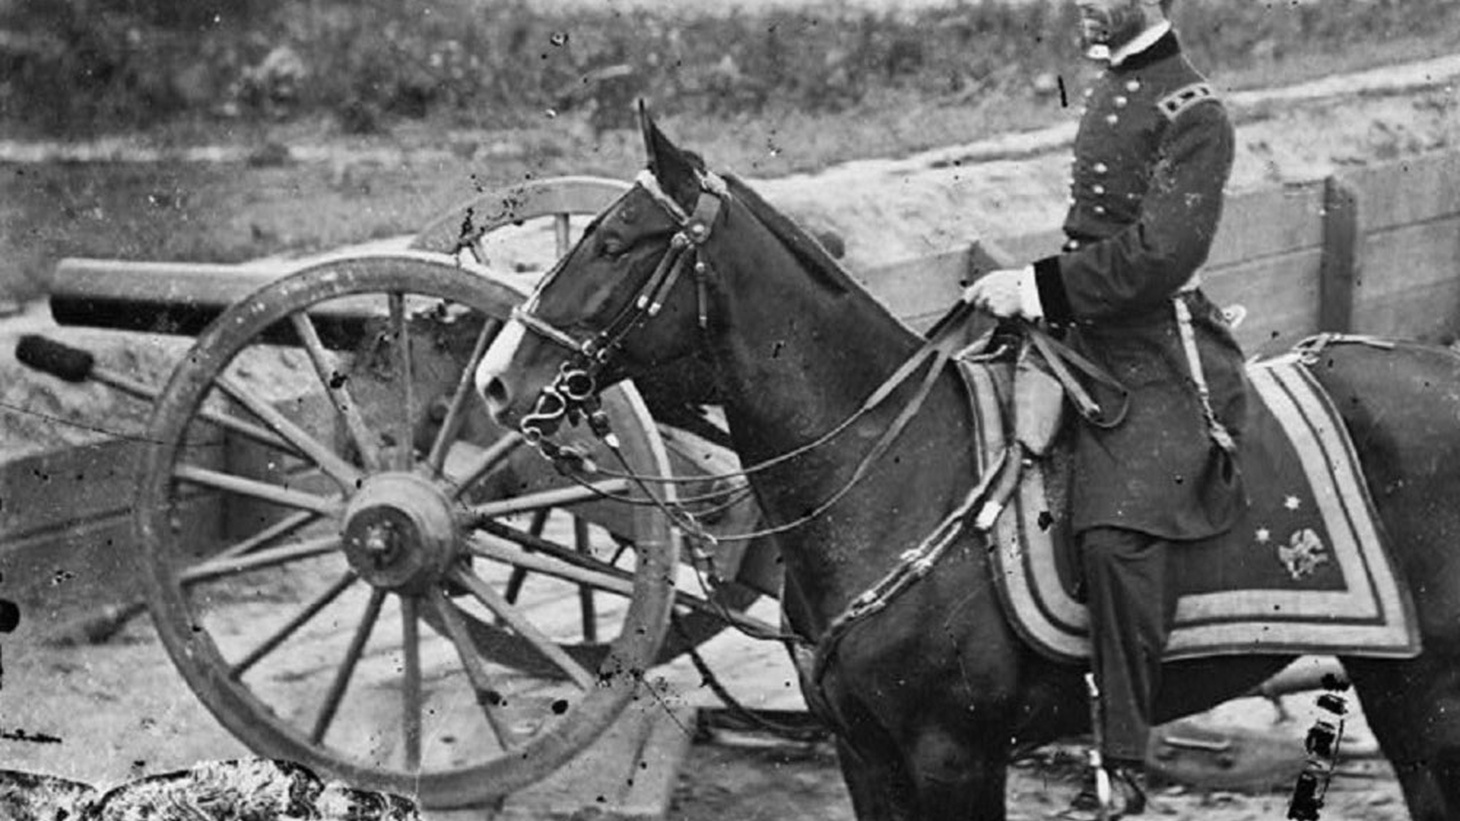 More than a century and a half later, it's time to give William Tecumseh Sherman his due. The Civil War hero was a steadying hand in California's wildest days and a major player in the events that led to this state joining the union.